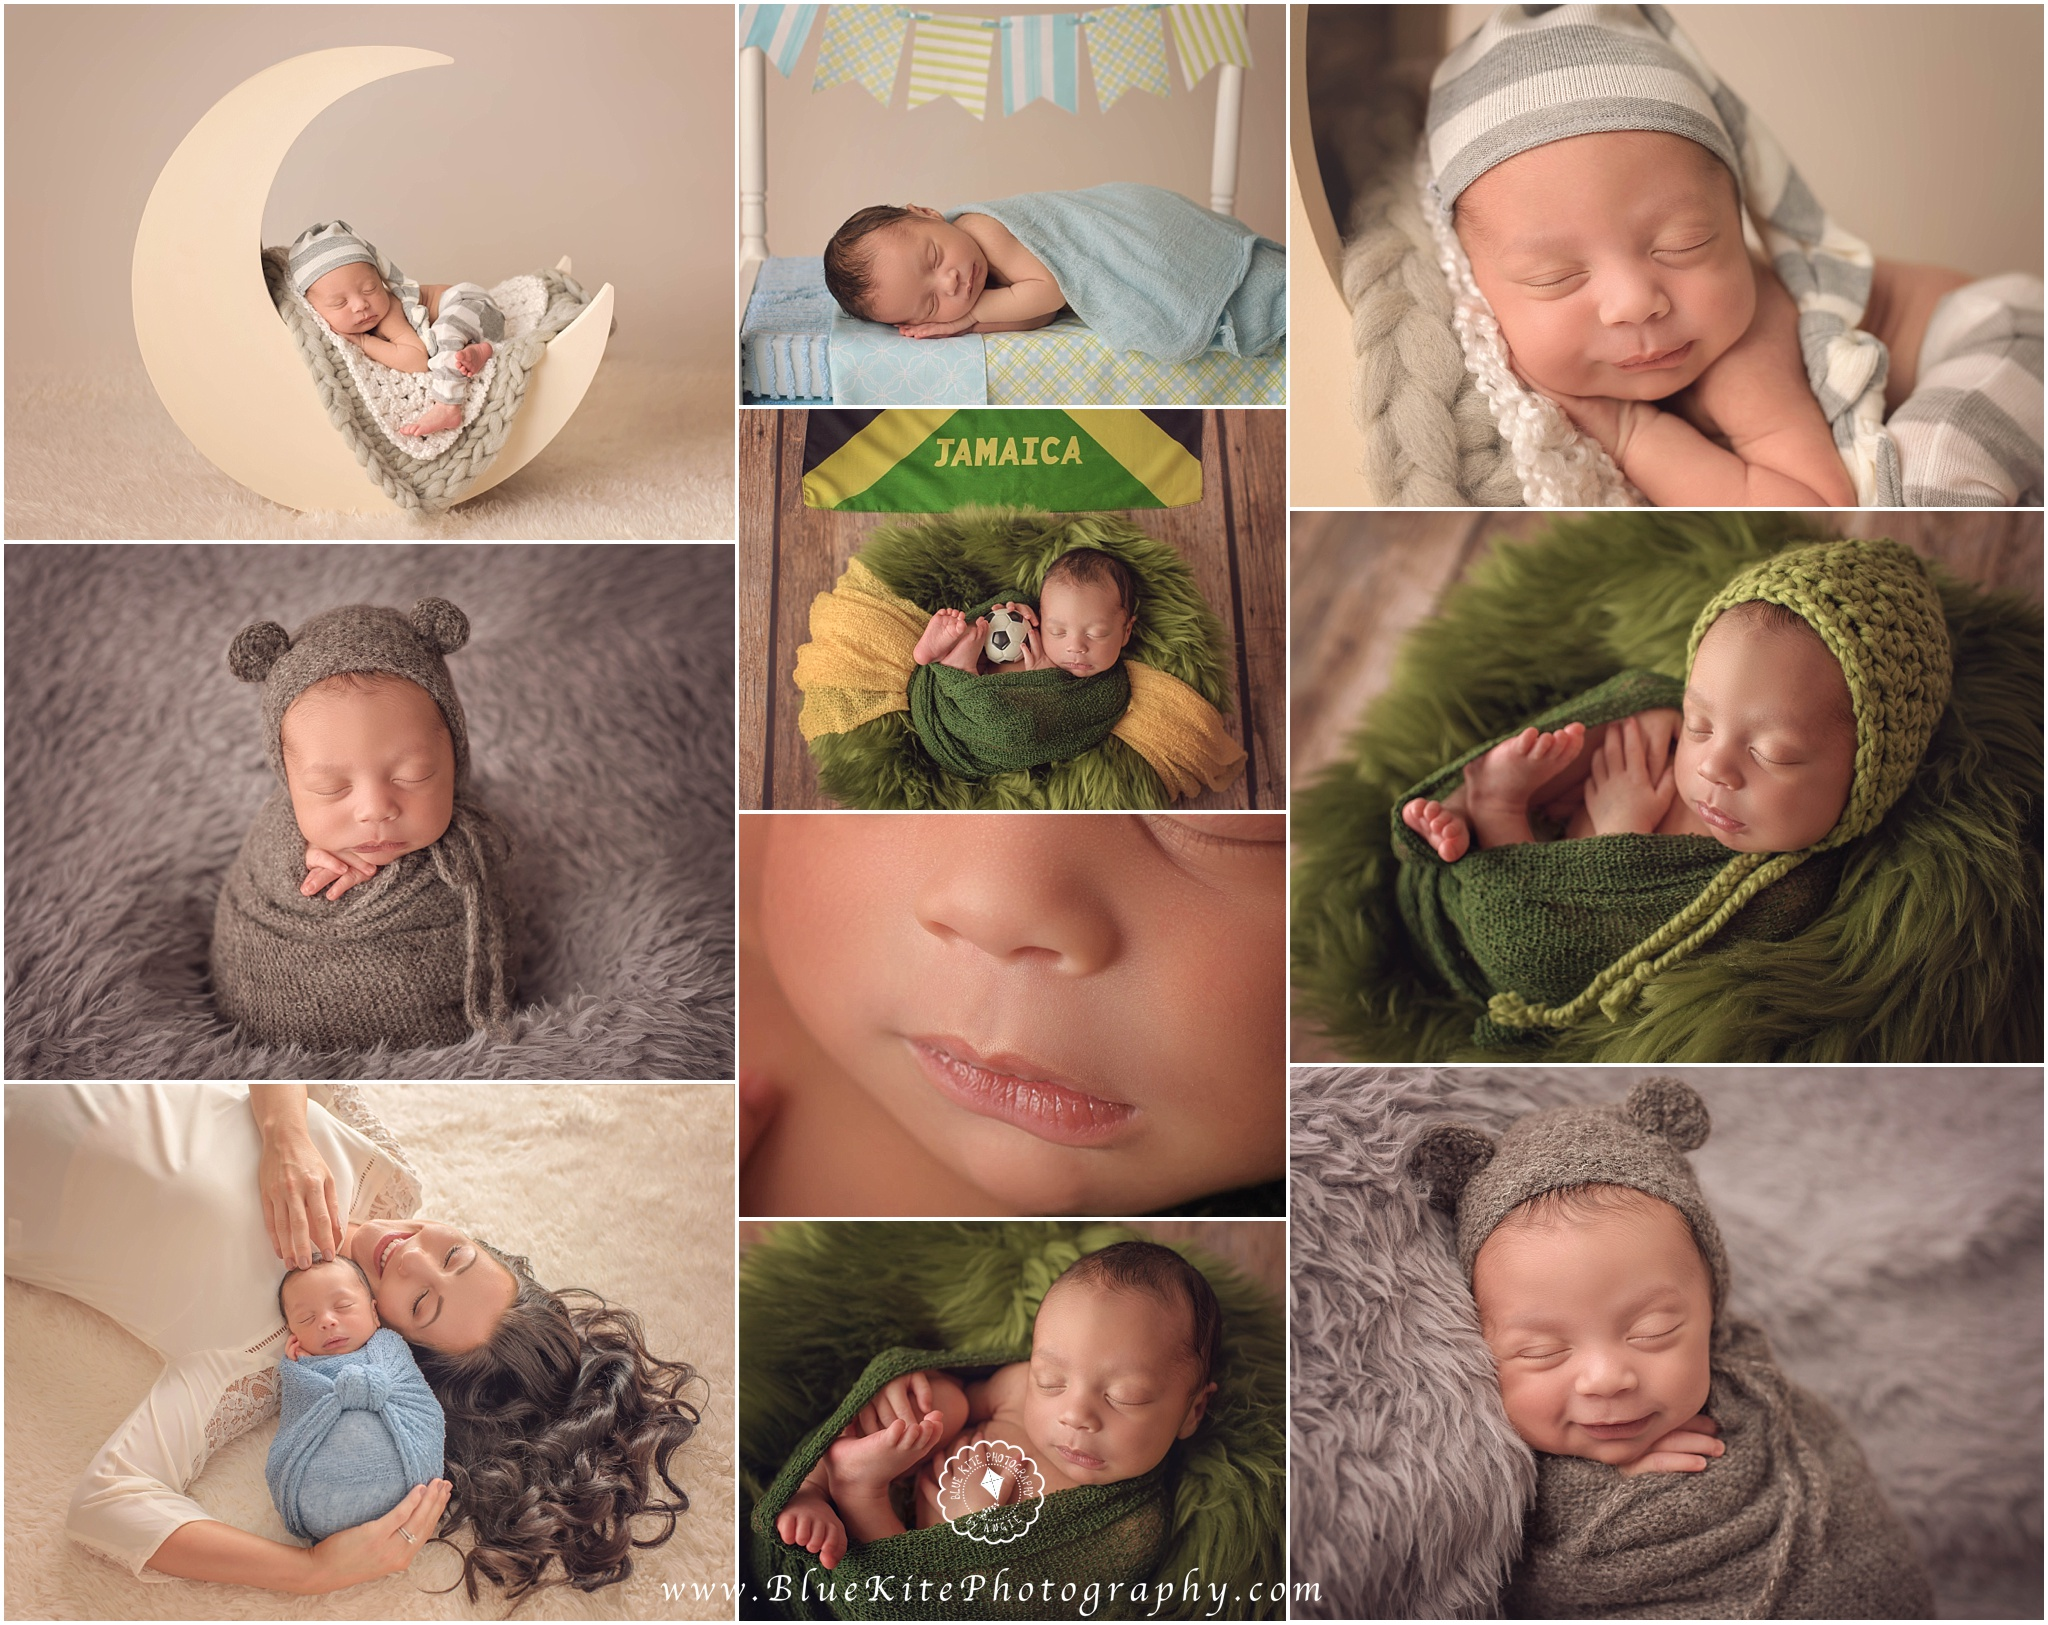 Newborn Photographer Boca raton, Coral Springs, Boynton beach, Parkland, Deerfield, Delray, Palm Beach